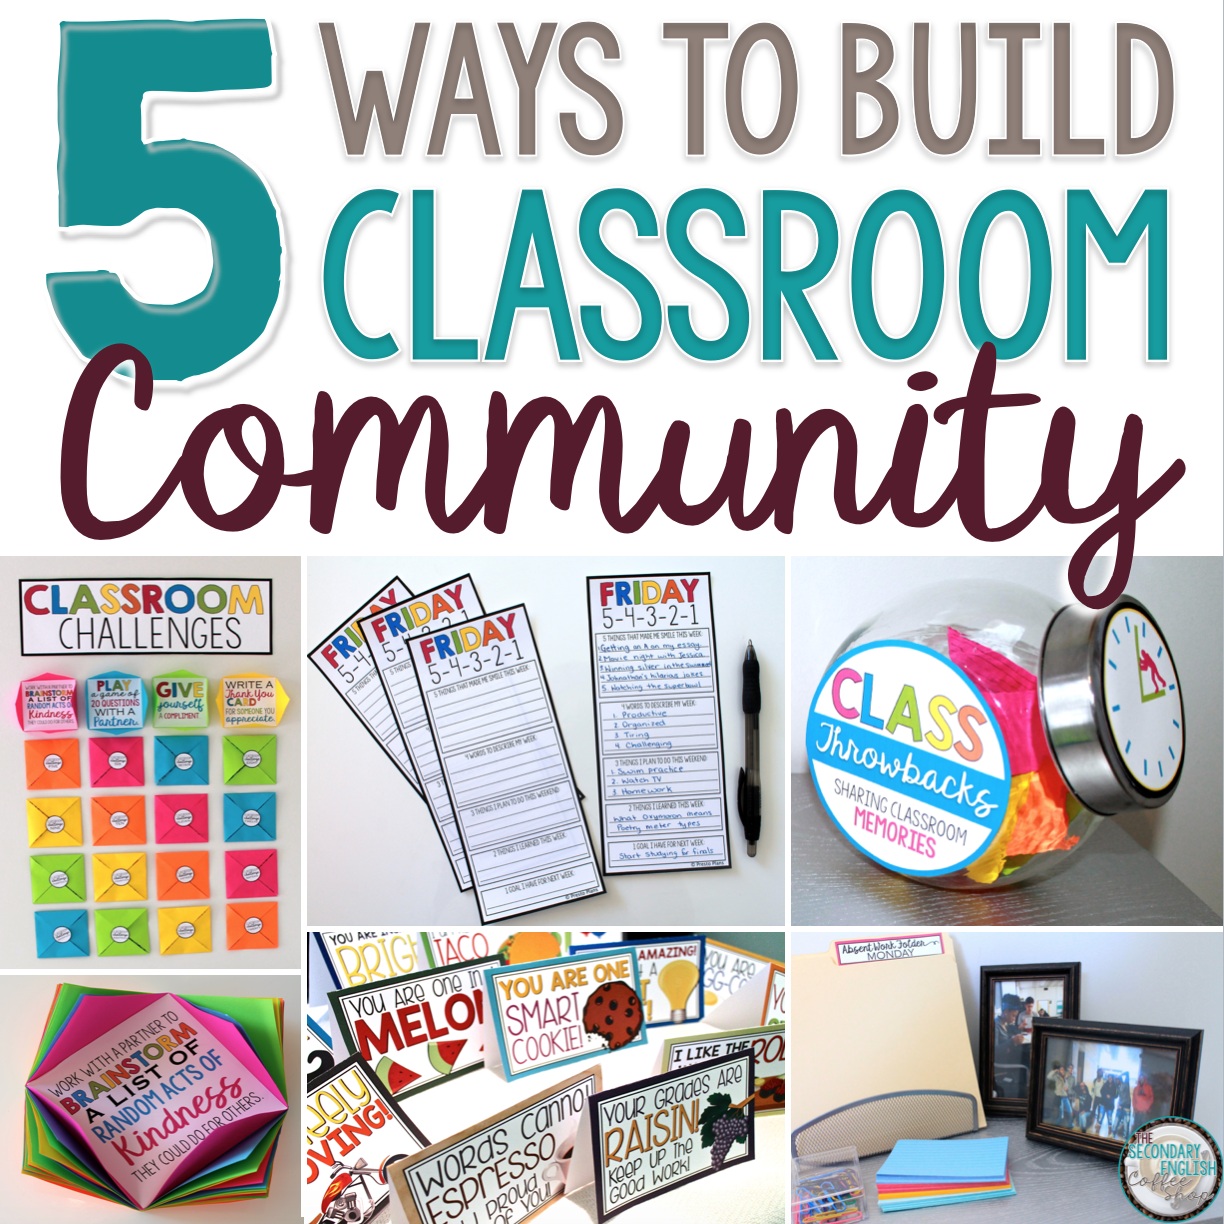 Building A Positive Classroom Community - The Secondary English ...